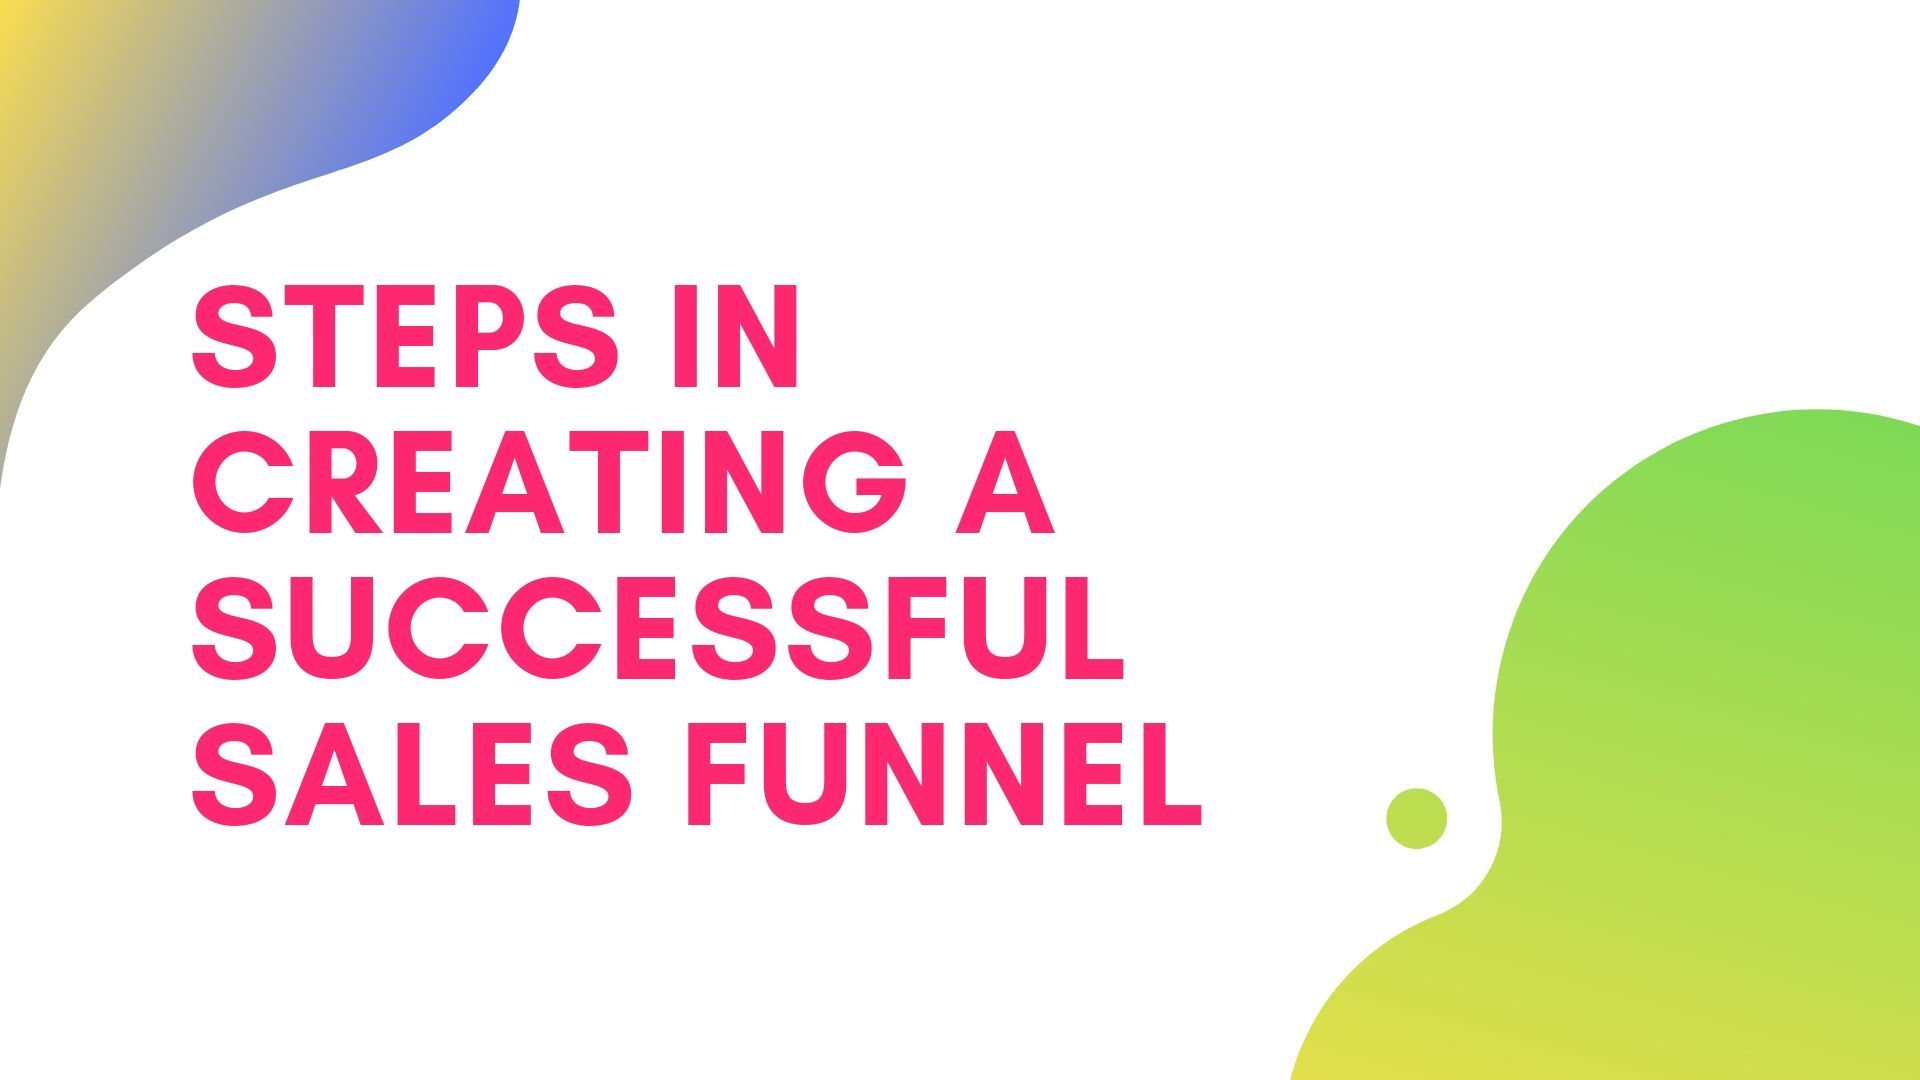 Steps In Creating a Successful Sales Funnel